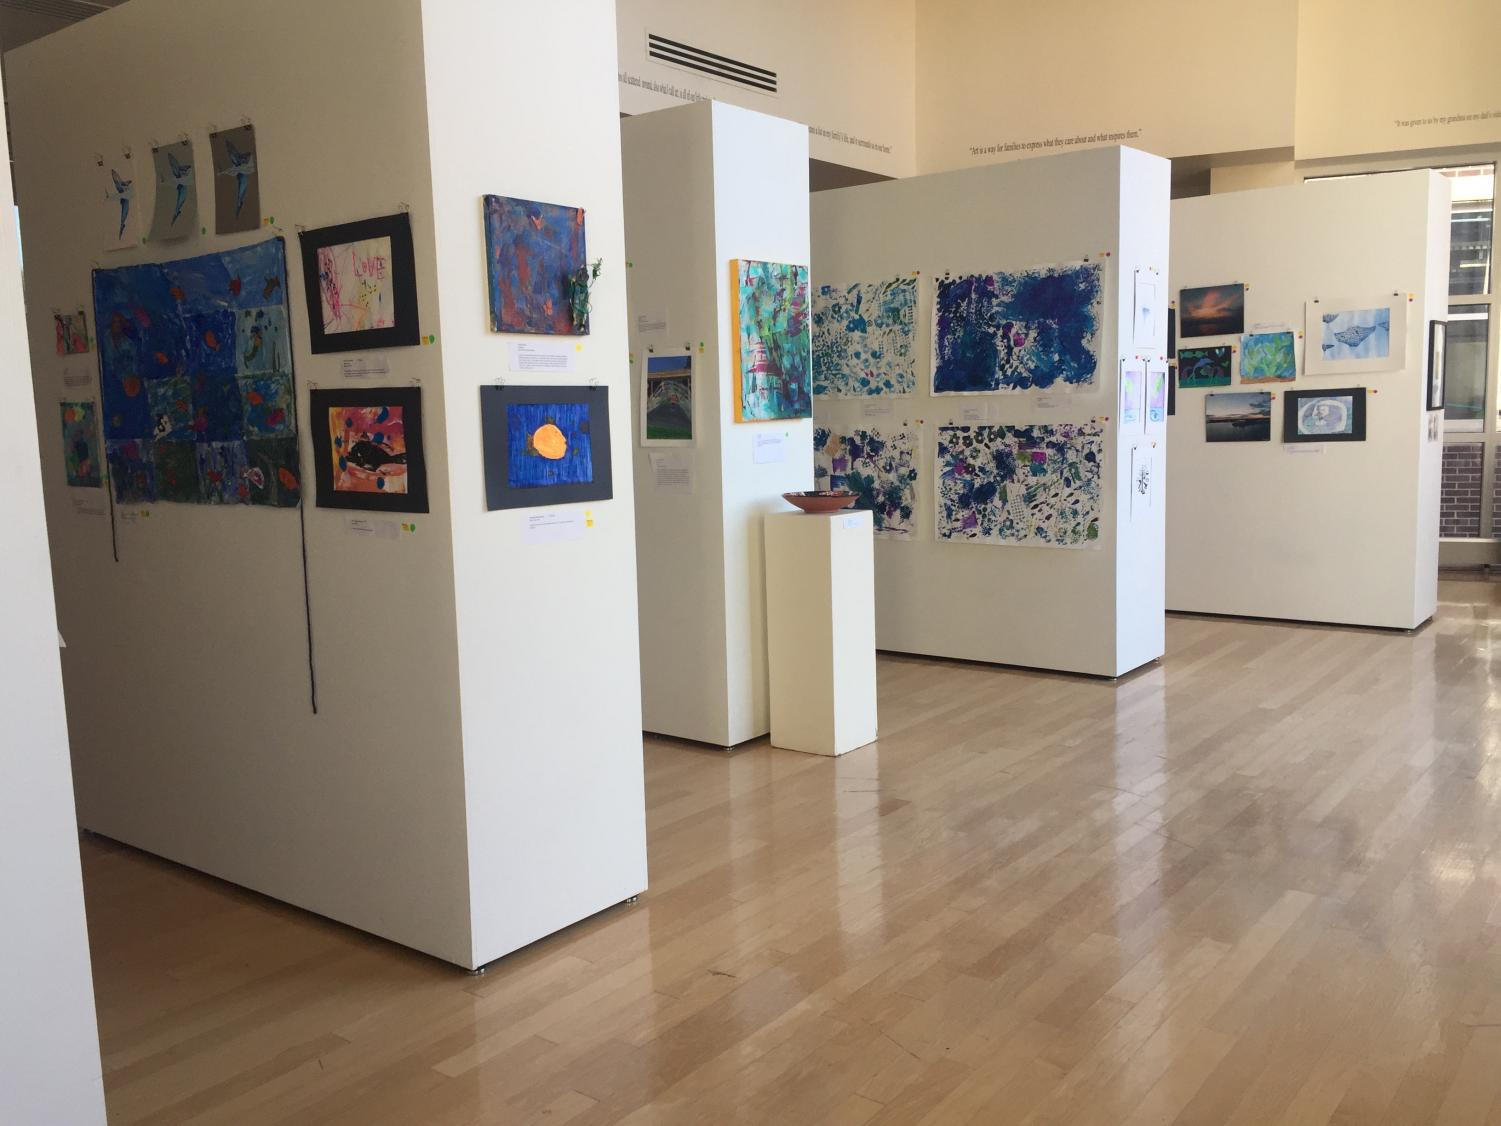 The pieces showcased in the gallery are created by students from kindergarten through twelfth grade and even by some faculty members.